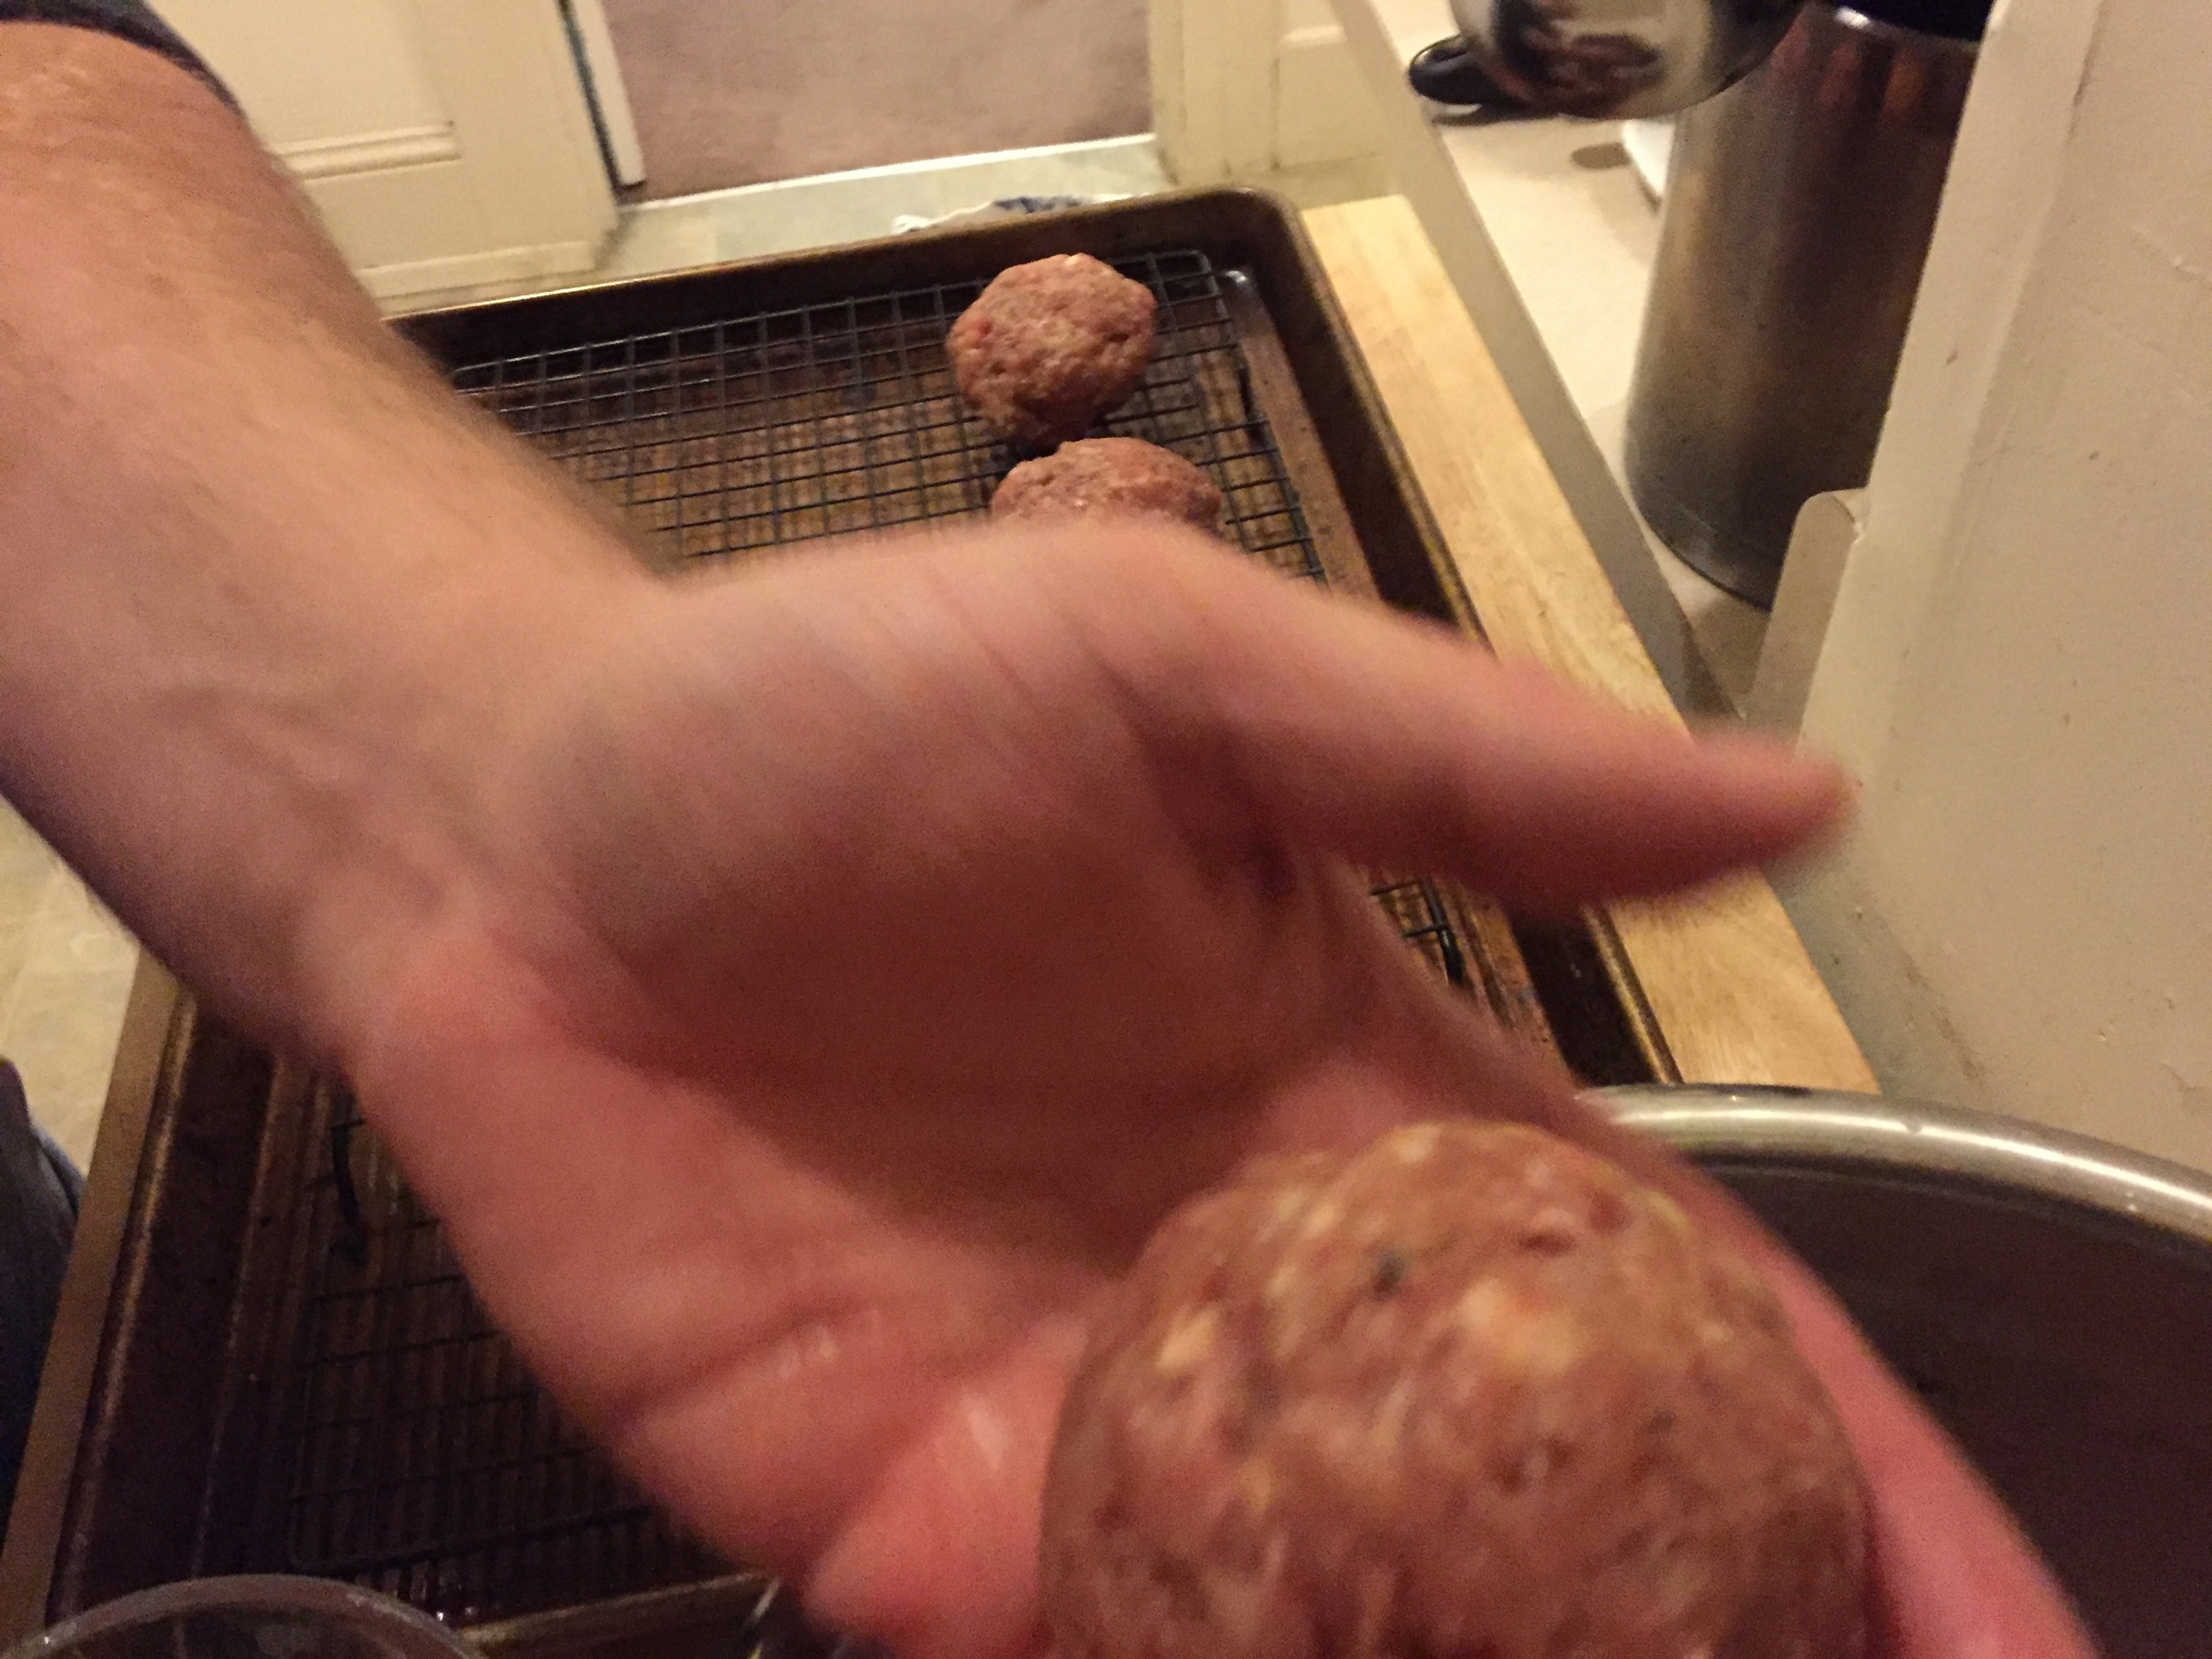 I don't know how this got blurry, but that's more or less what the meatball should look like when you're done rolling it. Minus the blurriness.